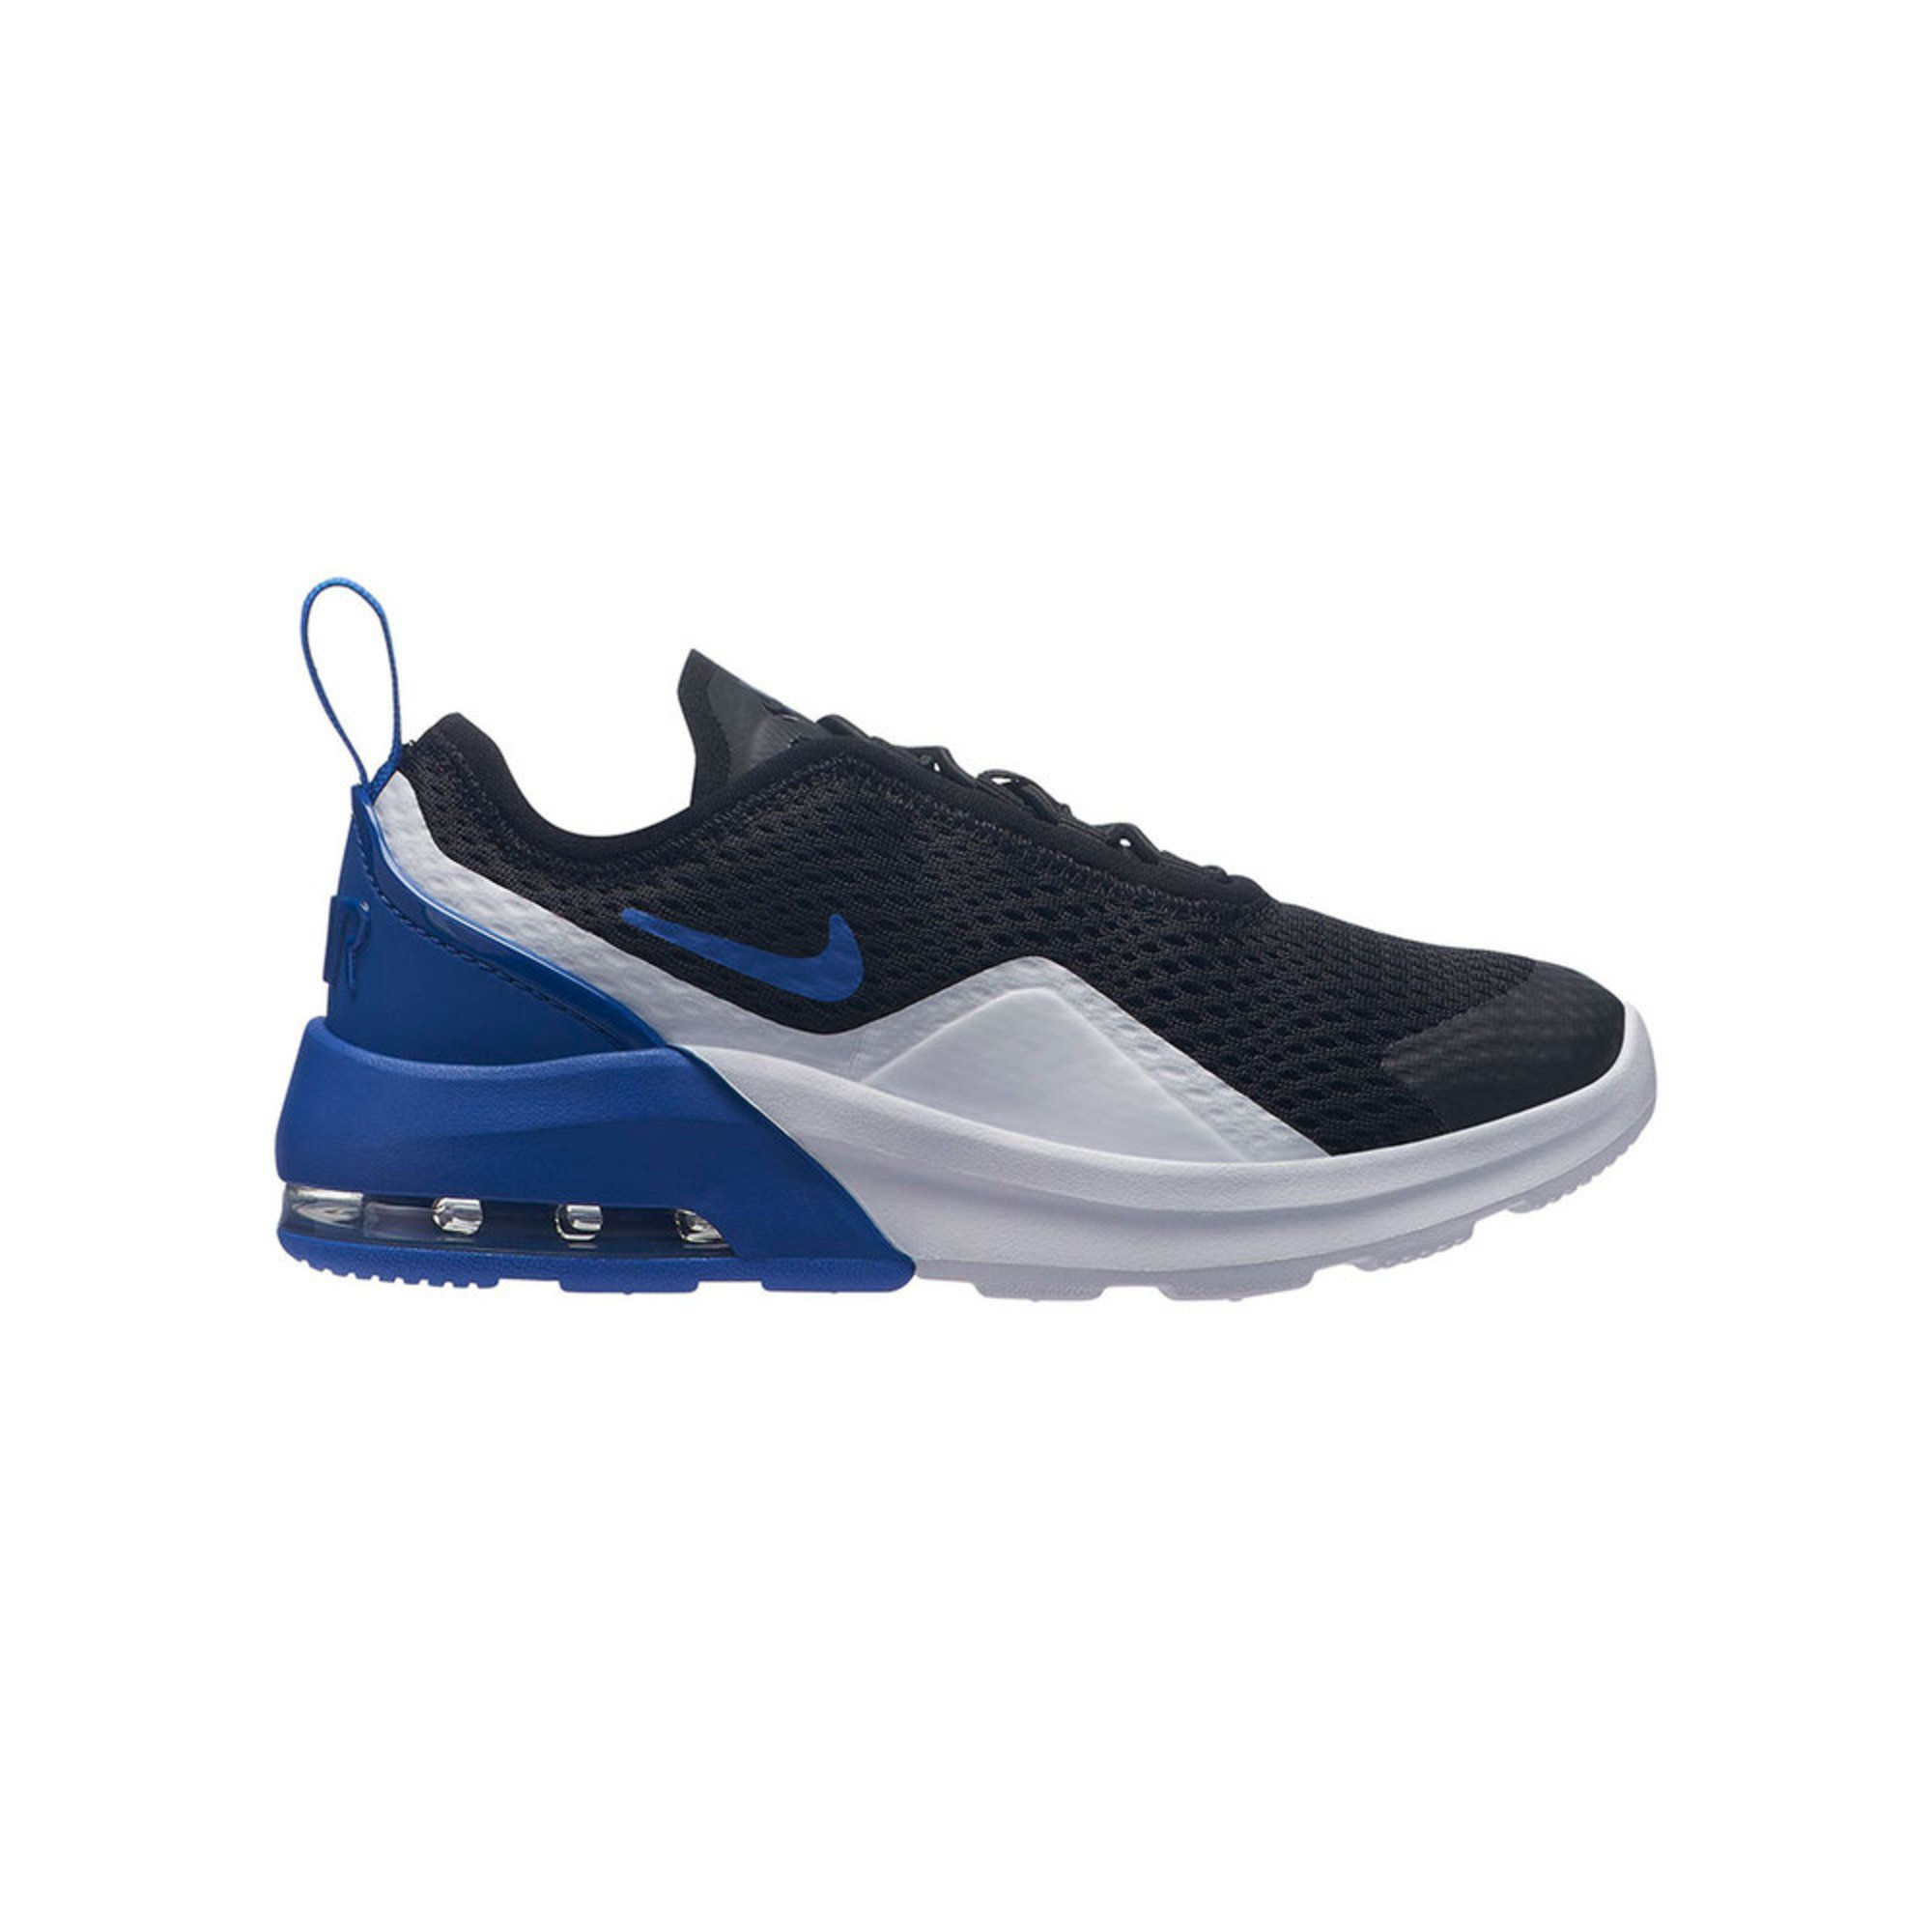 83a13d9535ea6 Nike Boys Air Max Motion 2 Boys Running Shoe (little Kid)